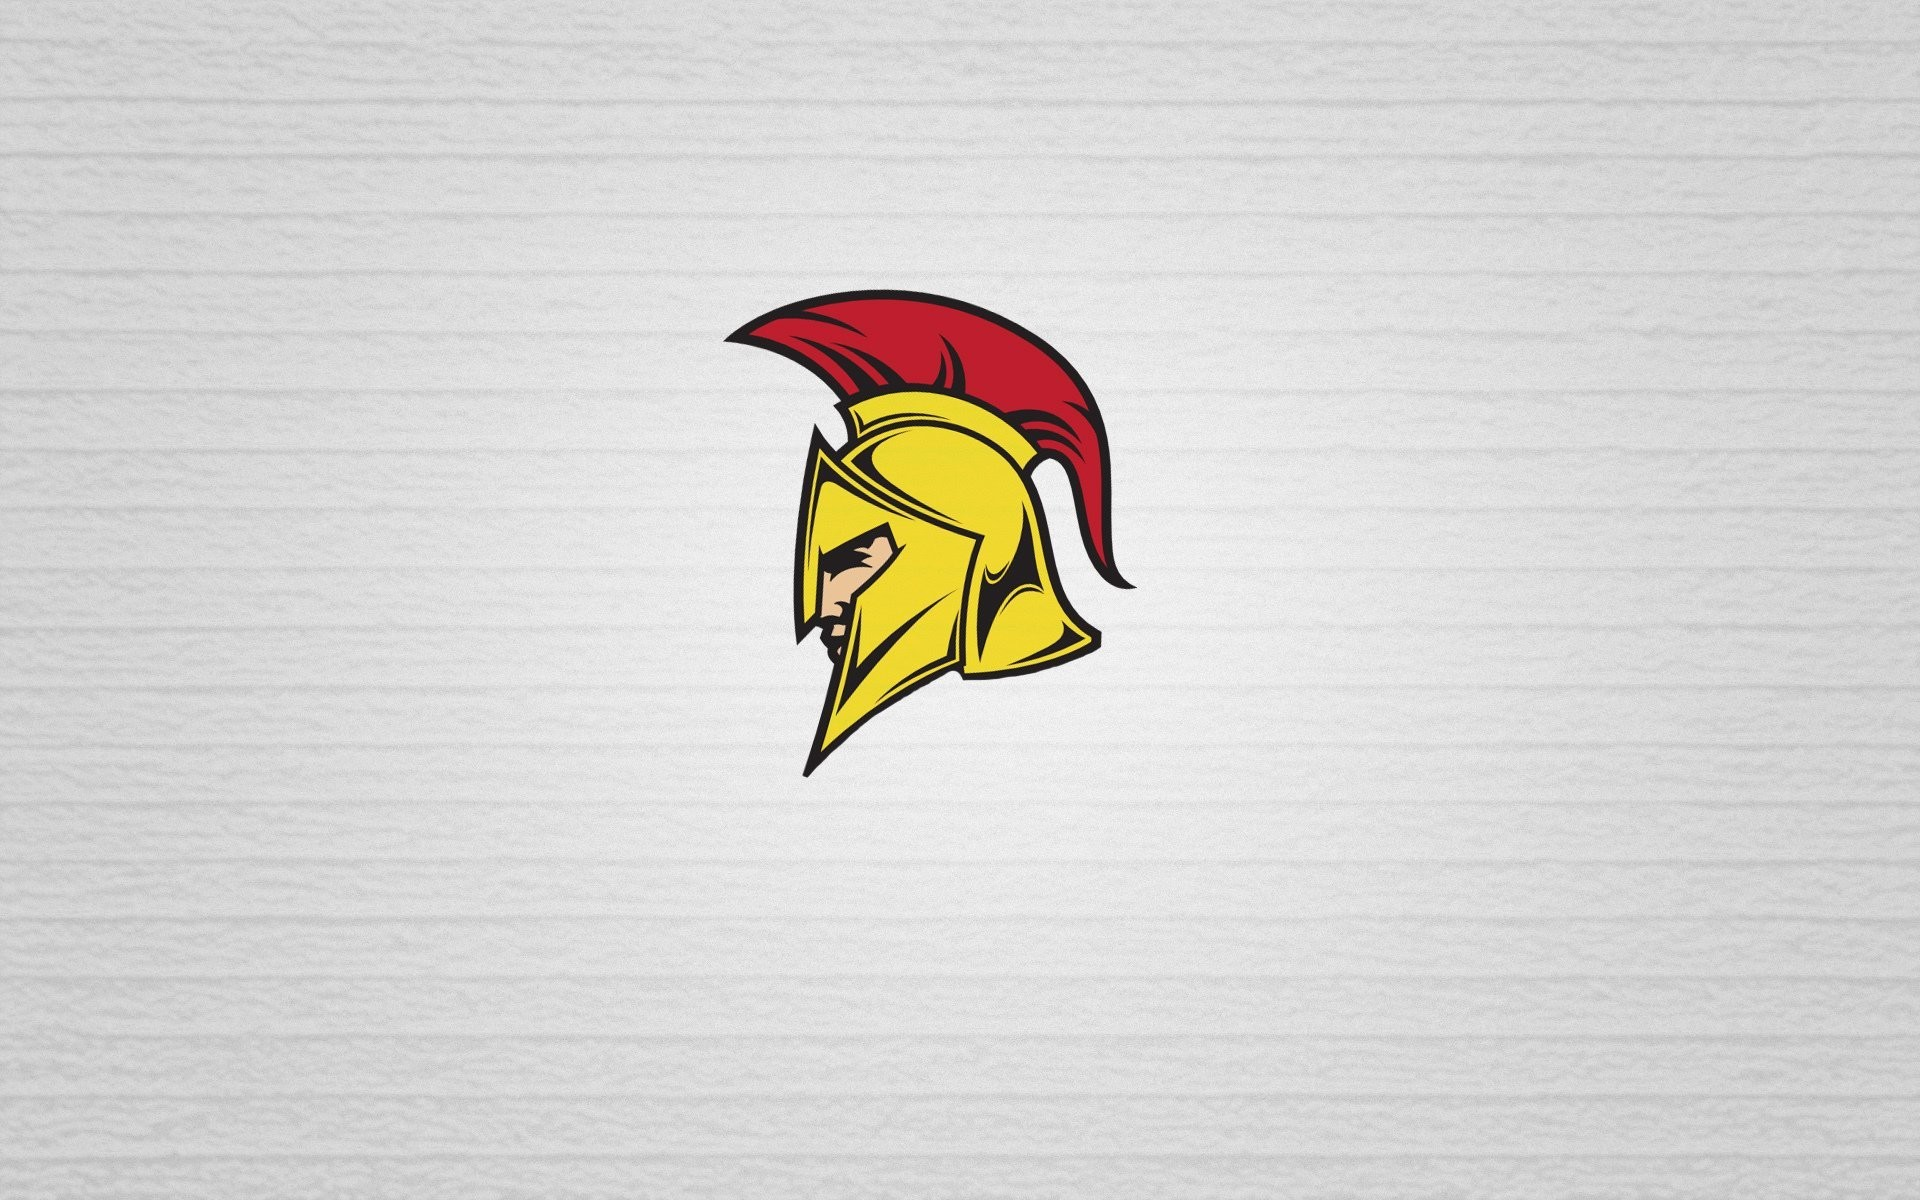 rome helmet head men armour red yellow white background minimalism greece  greek this is sparta